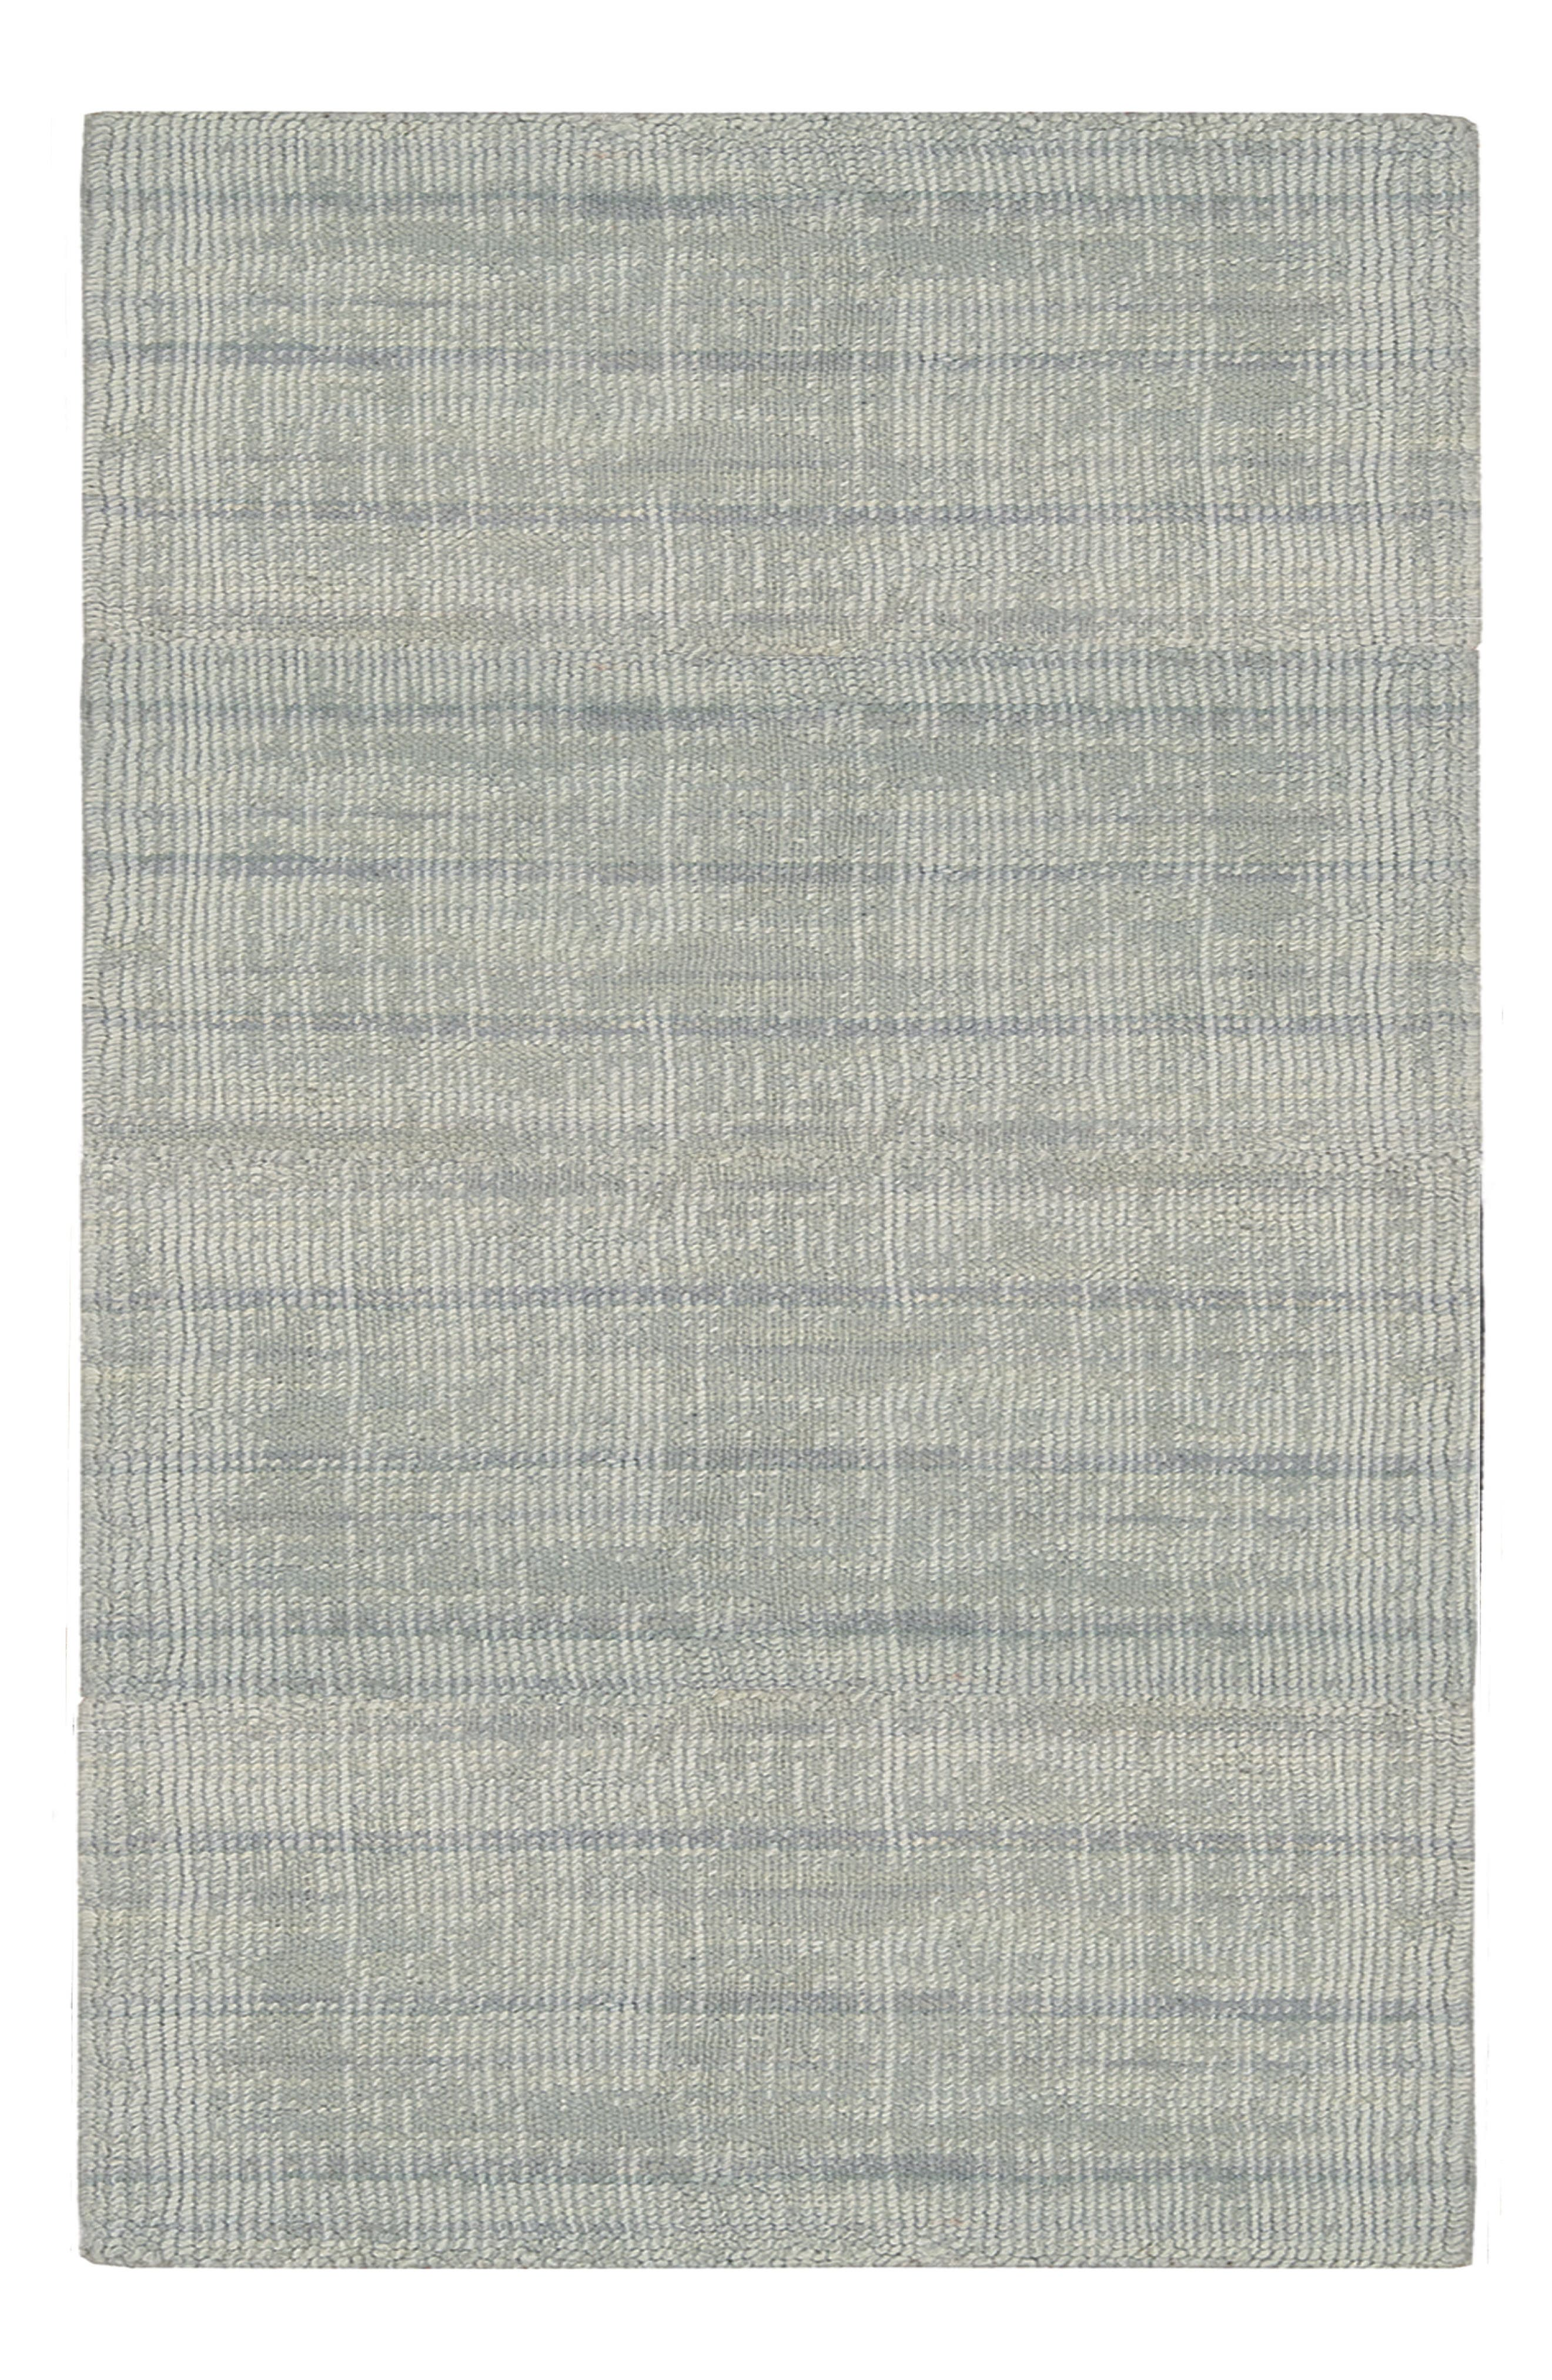 Nevada Valley Handwoven Area Rug,                             Main thumbnail 1, color,                             030